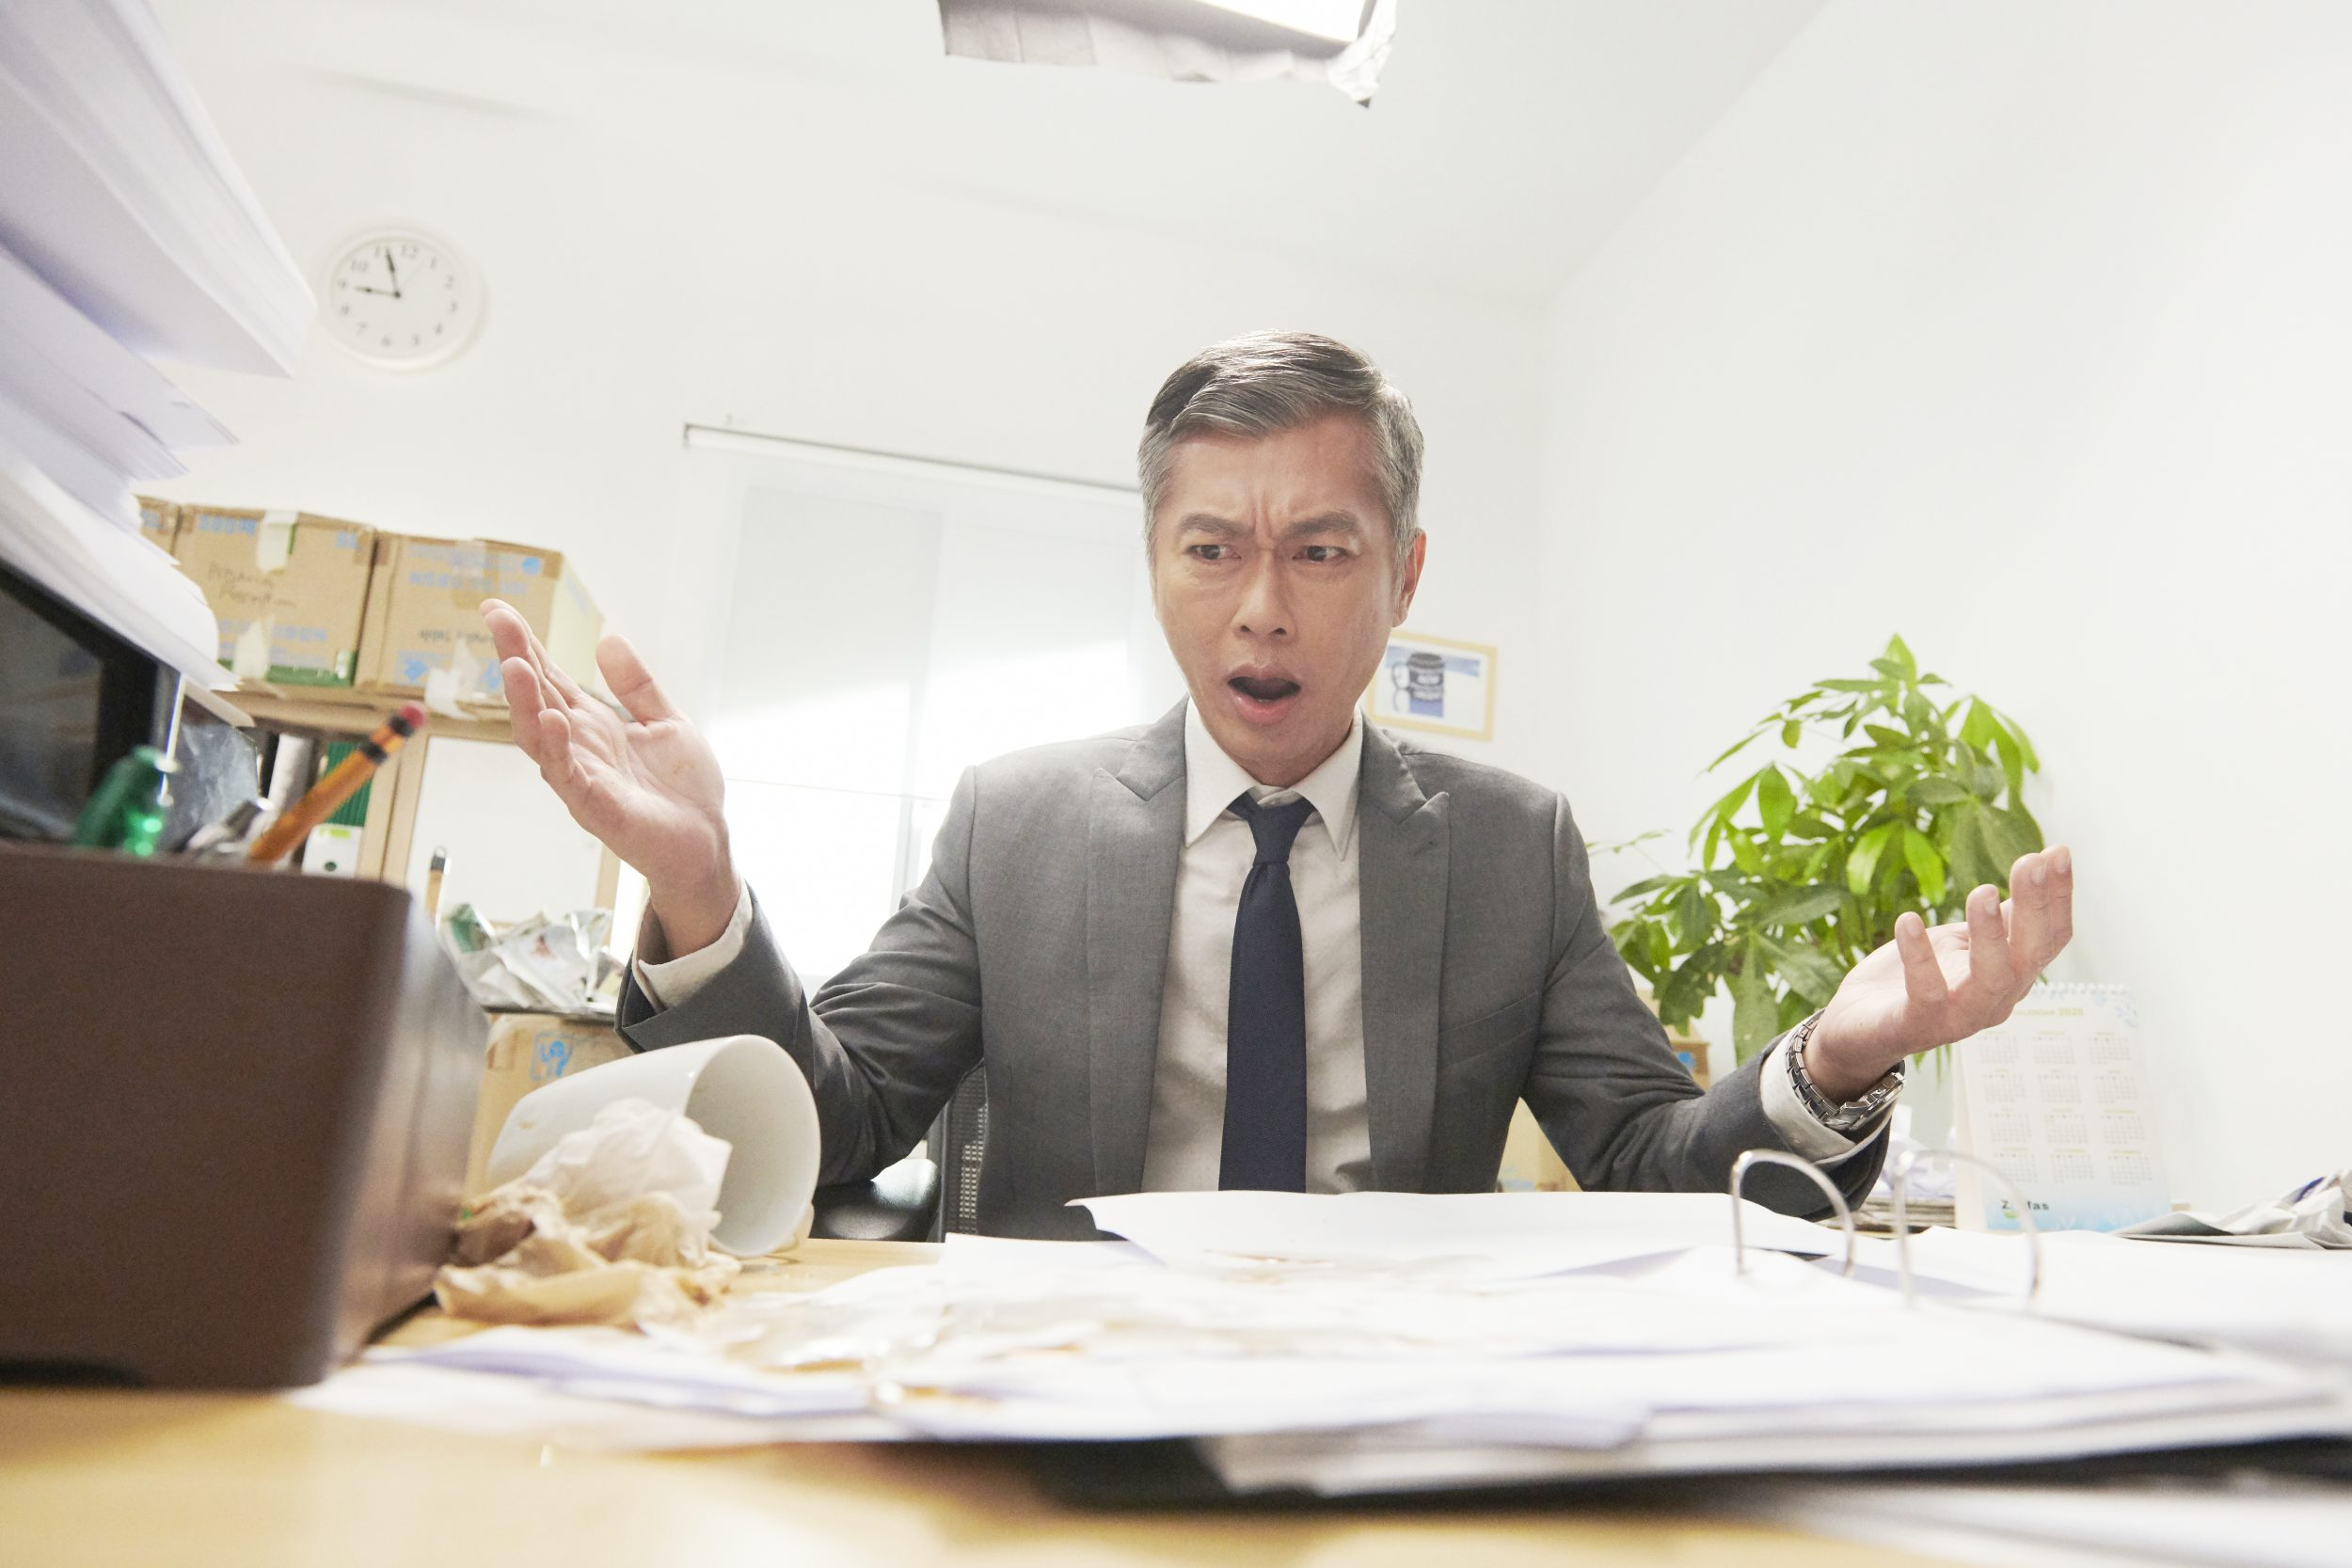 Mad office worker who is obviously irritated and complaining about spilling his food and having messy table